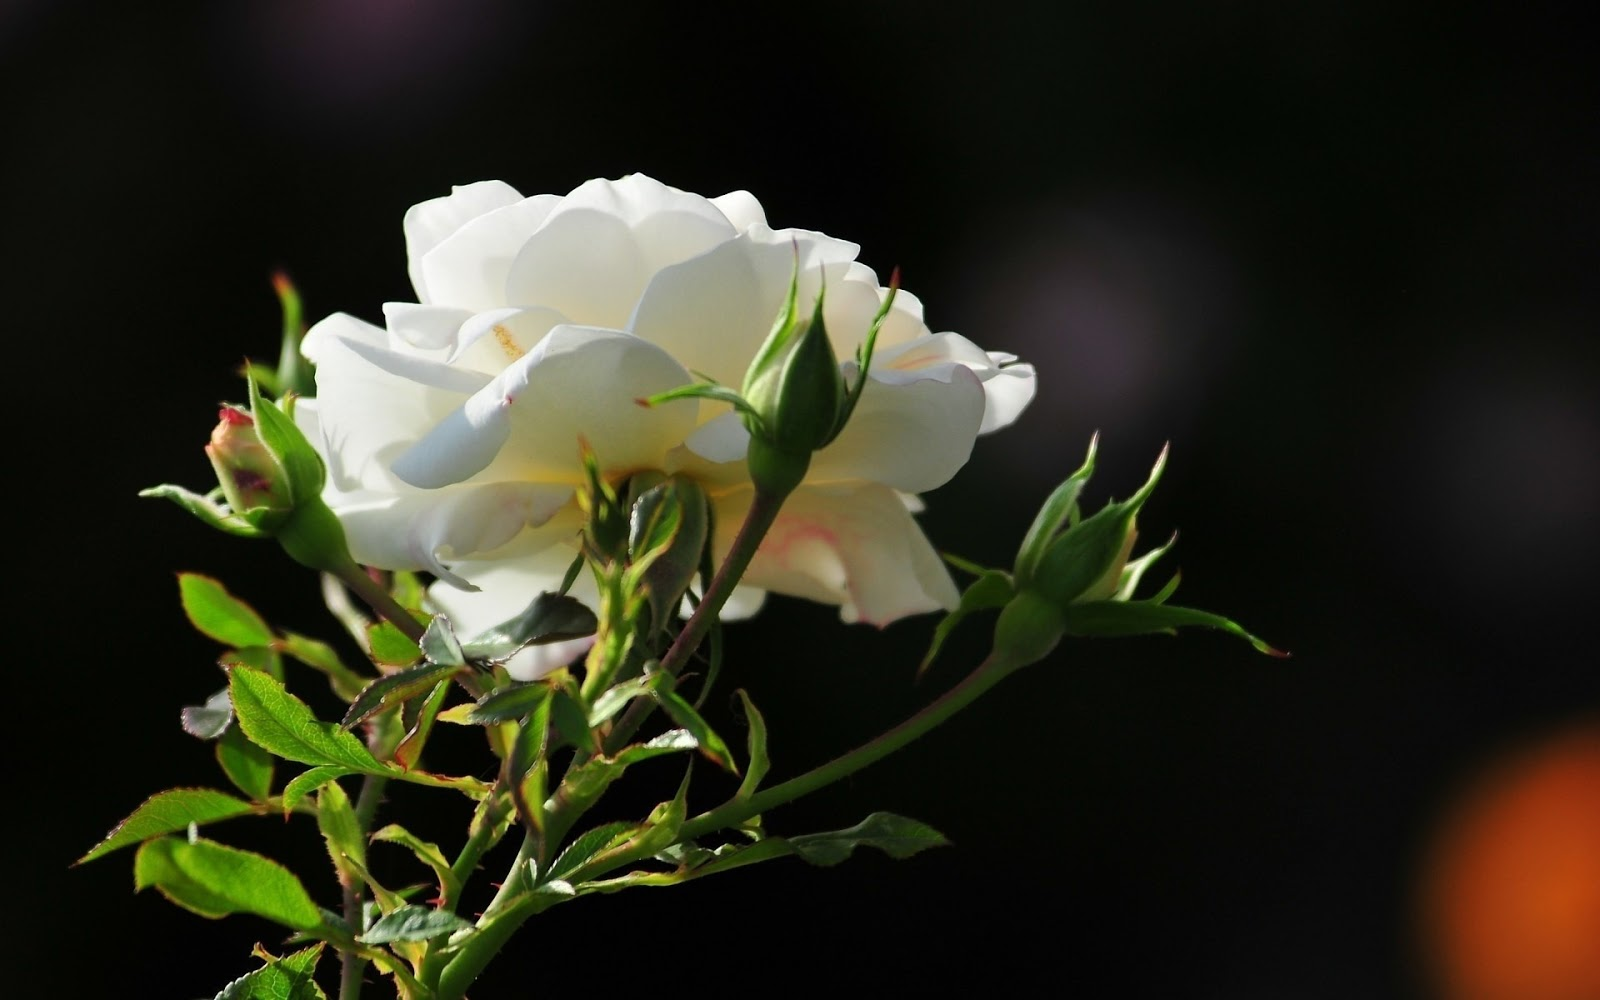 White rose hd free wallpapers download hd wallpaper.